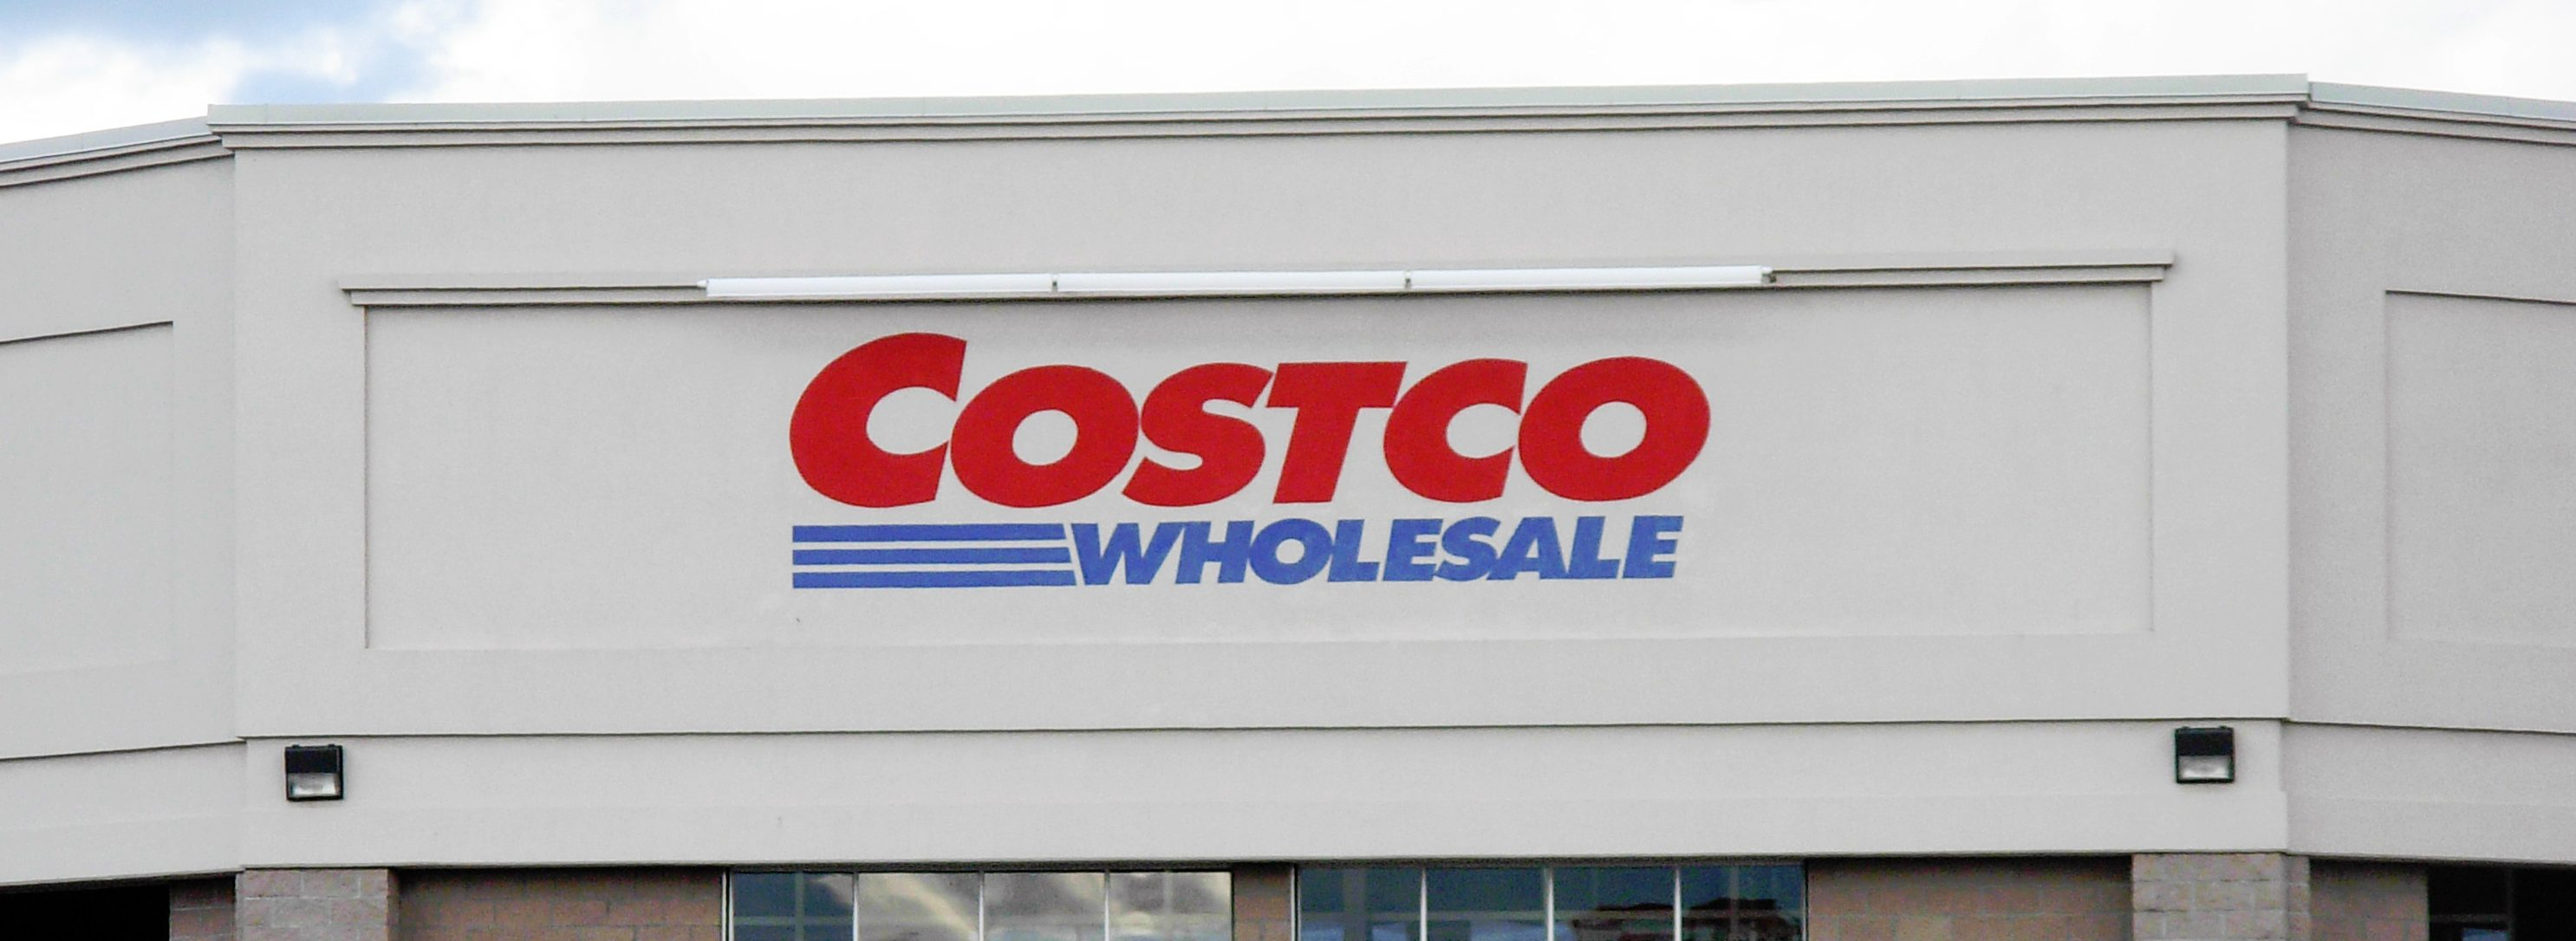 Costco to Open Seven New Stores in Canada in 2017 - RedFlagDeals.com